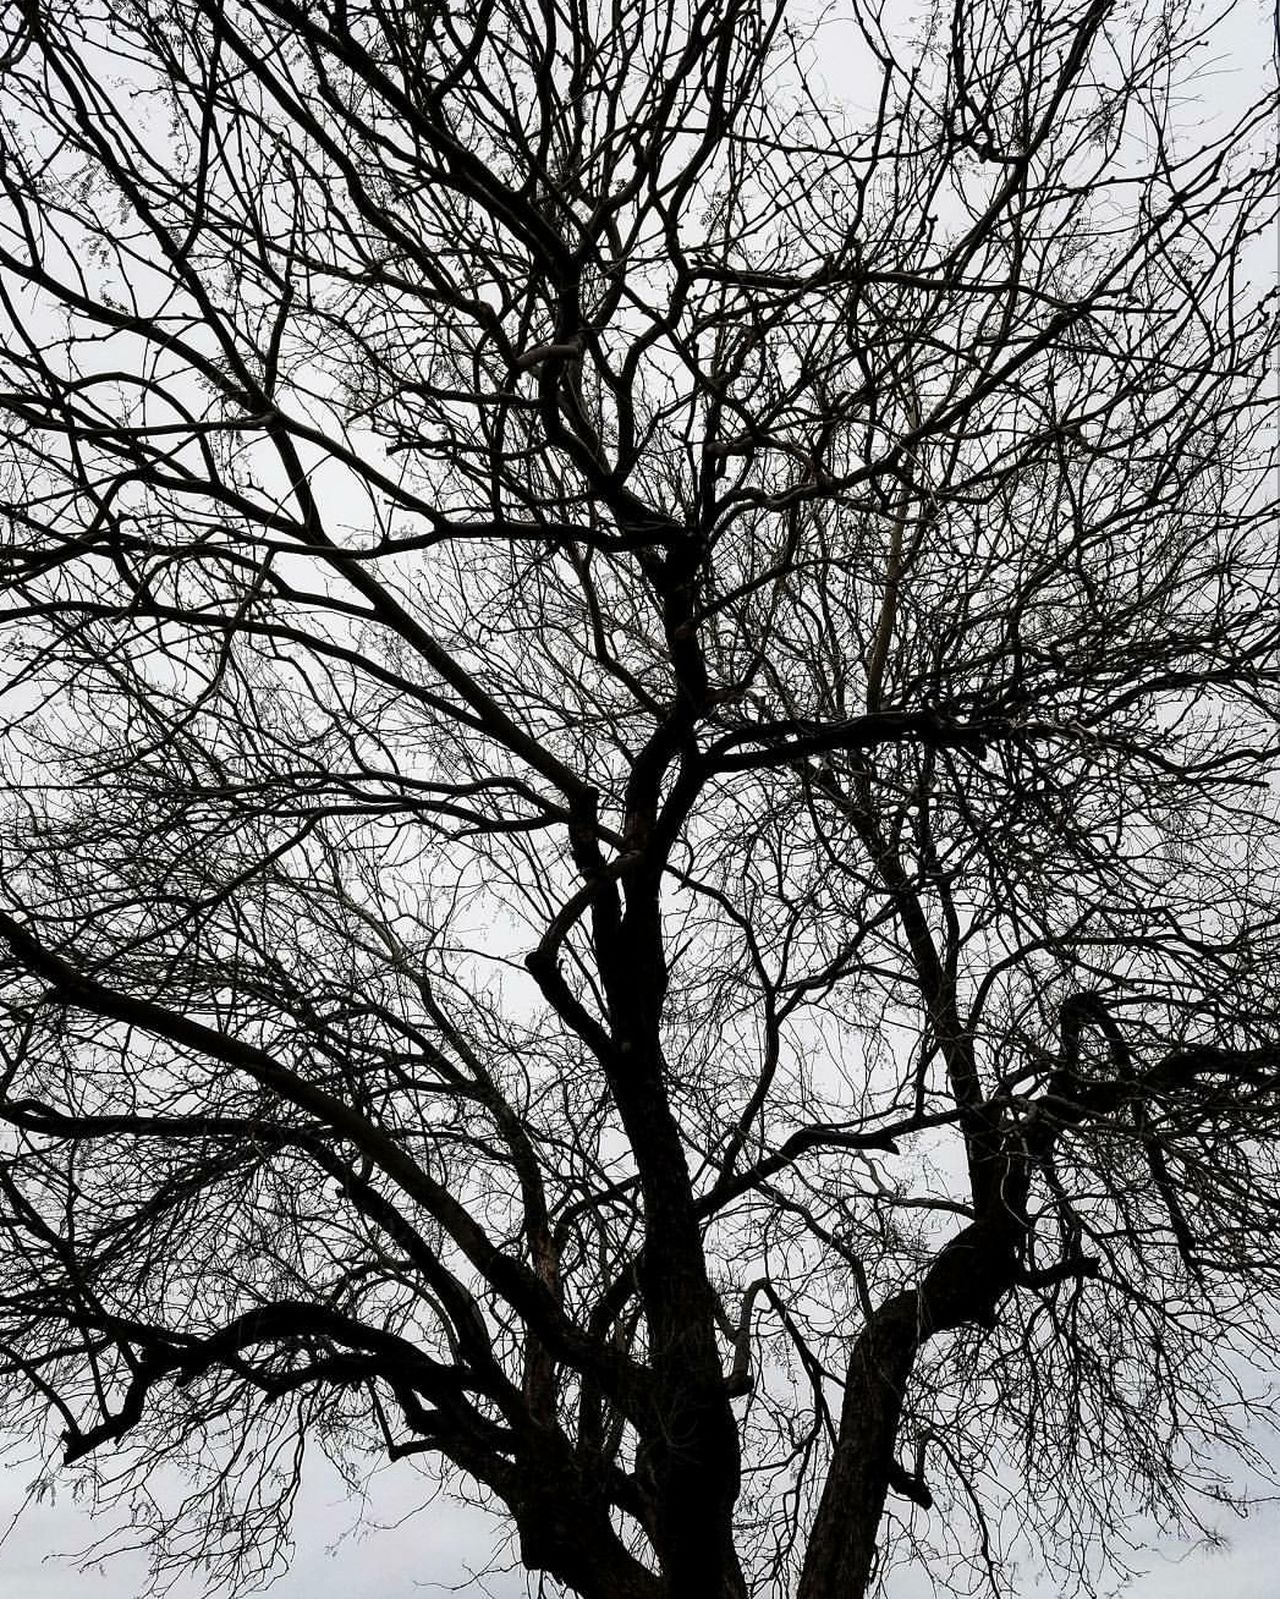 Branch Bare Tree No People Sky Tree Outdoors Nature Beauty Of Nature Premium Collection EyeEm Vision EyeEmBestEdits EyeEm Best Shots BestEyeemShots BestofEyeEm Beauty In Nature